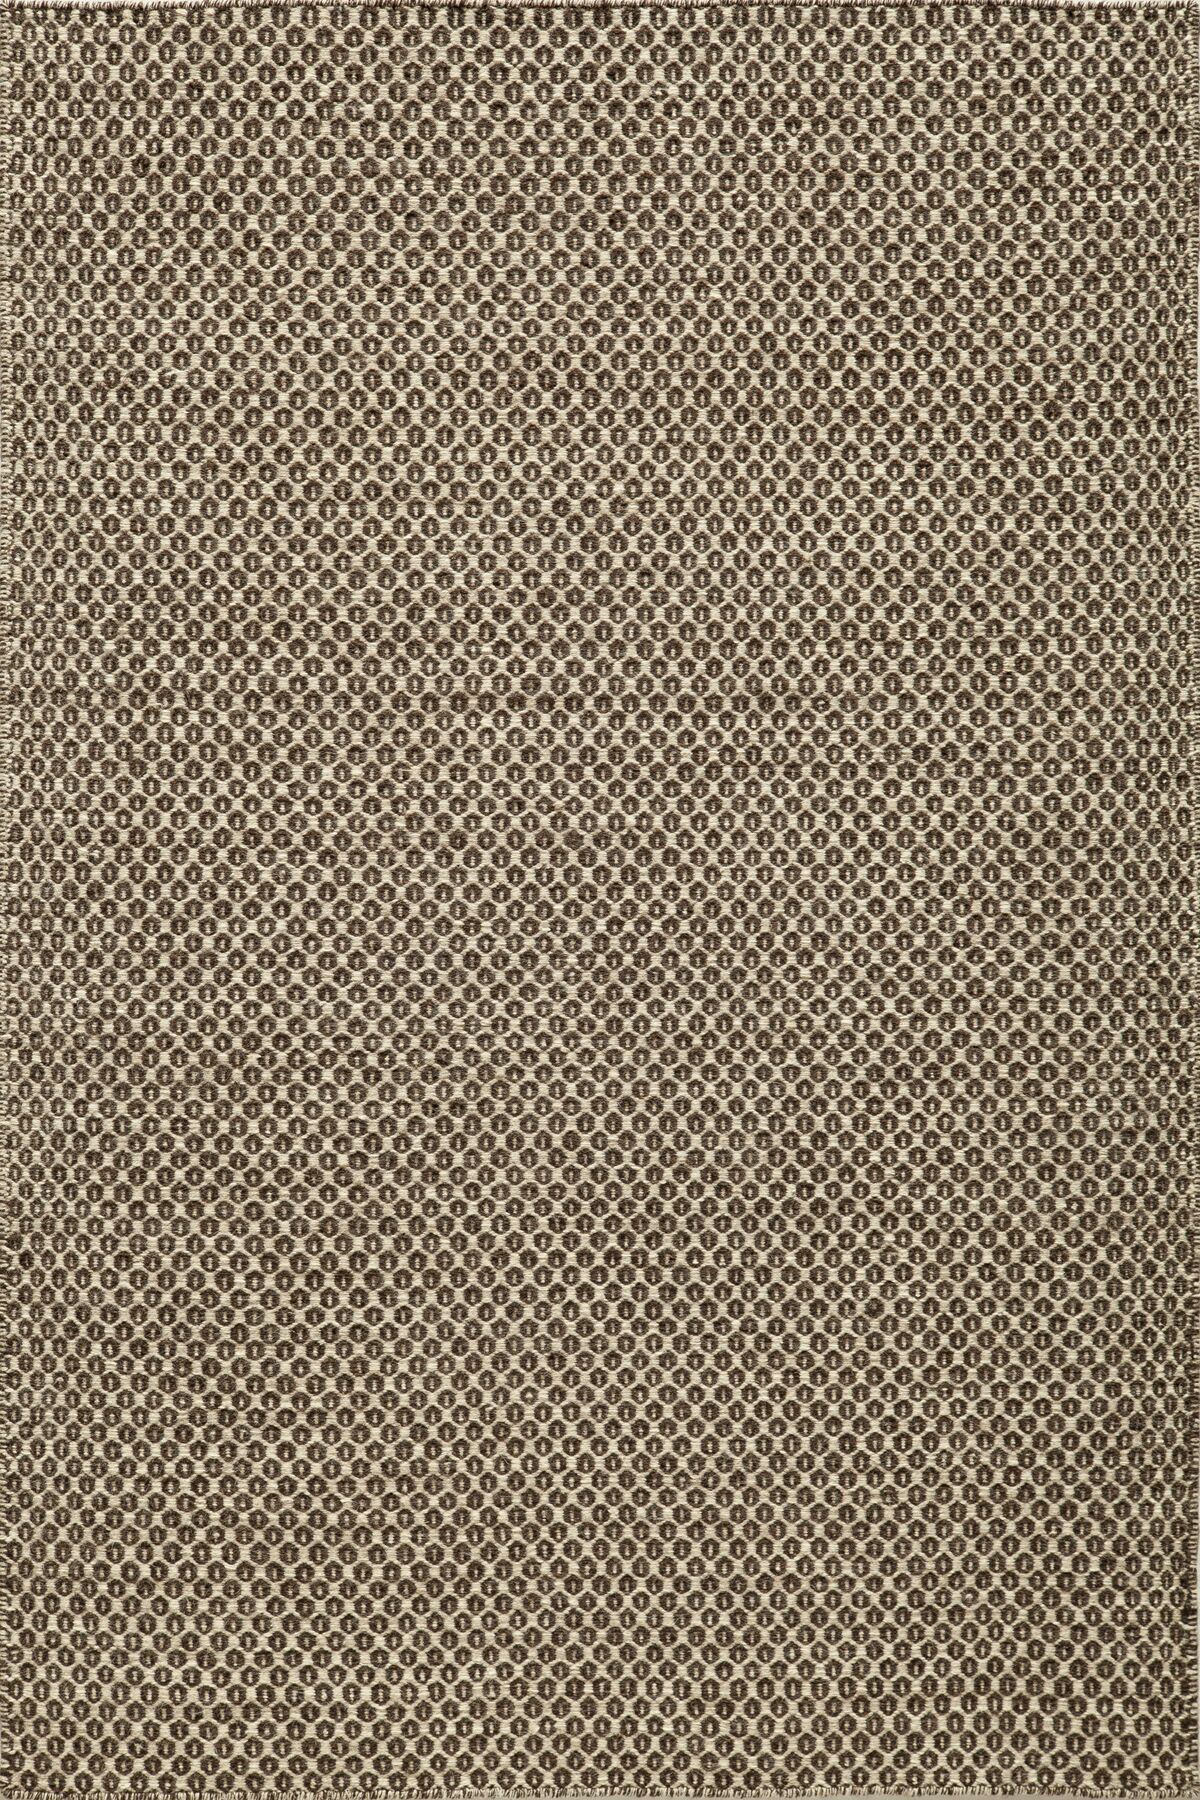 Epping Hand-Woven Brown Area Rug Rug Size: Rectangle 3'6